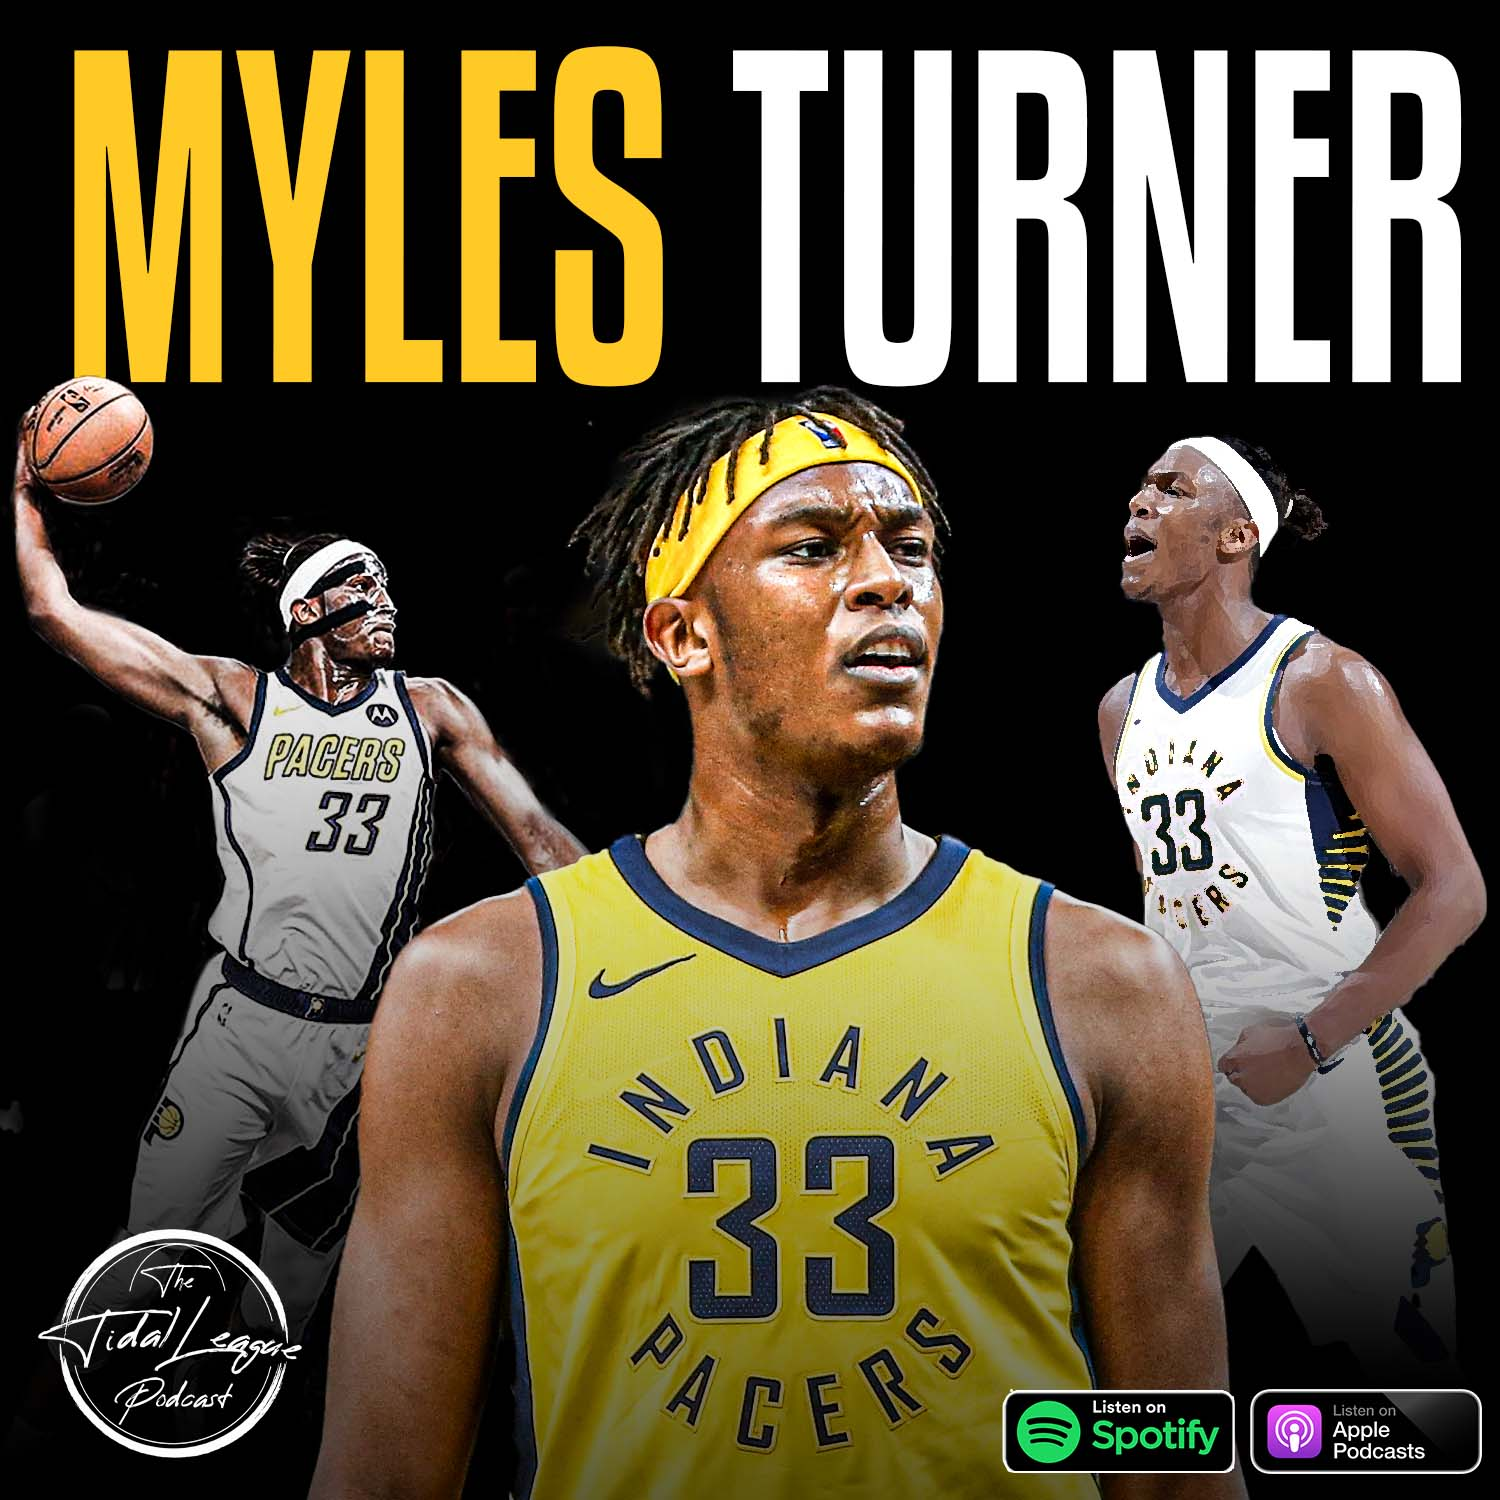 Myles Turner of the Indiana Pacers